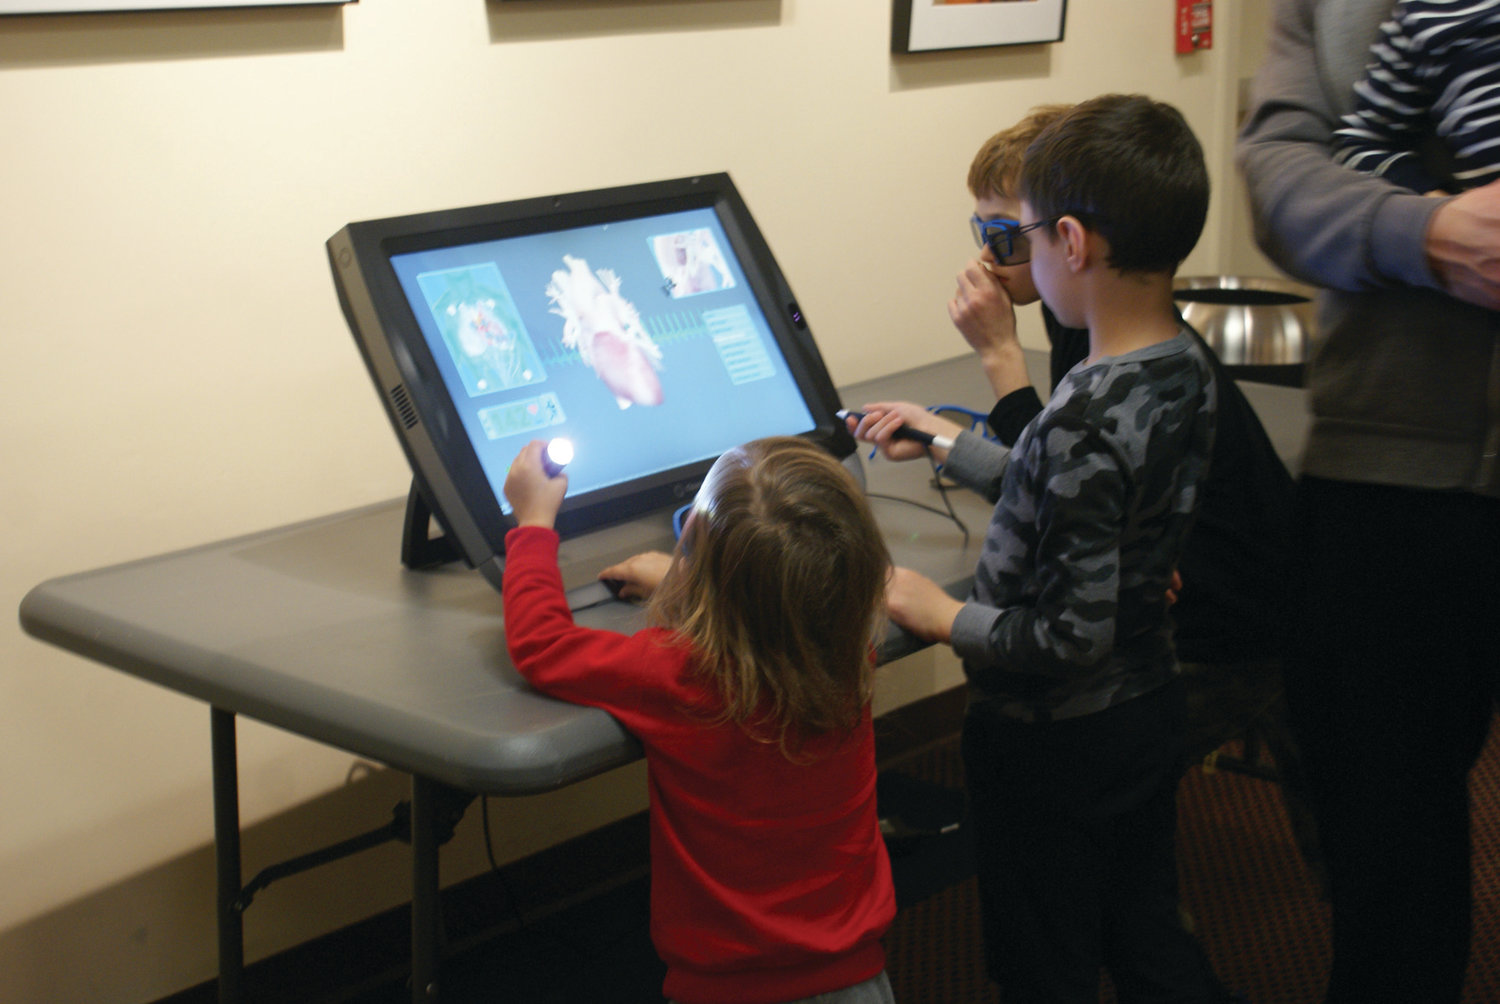 3D STATION: Looking at a three-dimensional view of a beating heart during X-Ray Vision Family Fun Day were 3-year-old Henry Bartos, 6-year-old Michael Yingling and 8-year-old Asher Germanowski.